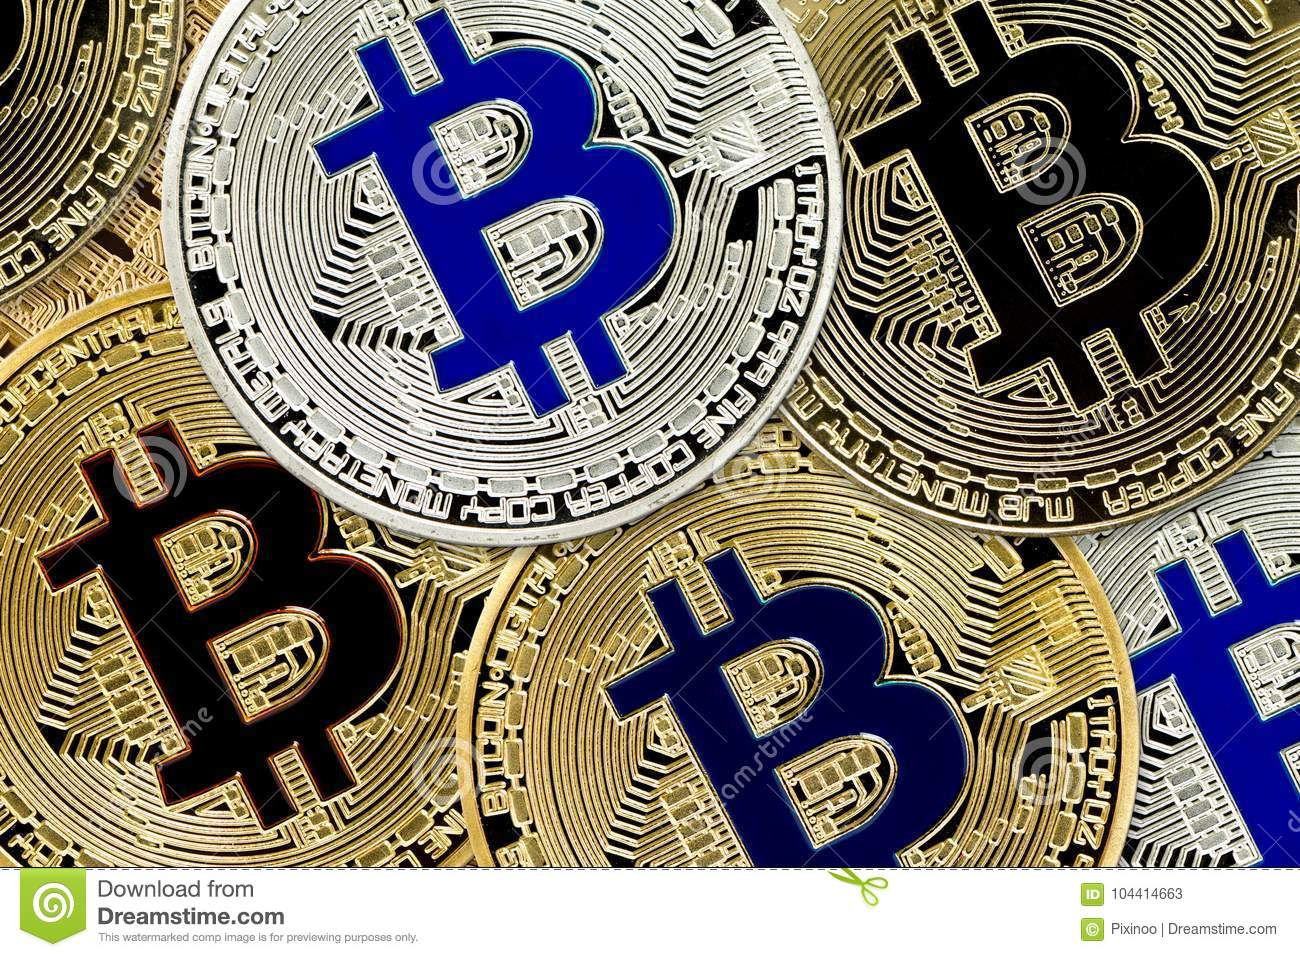 Bitcoin Cryptocurrency concept of virtual currency background virtual coins